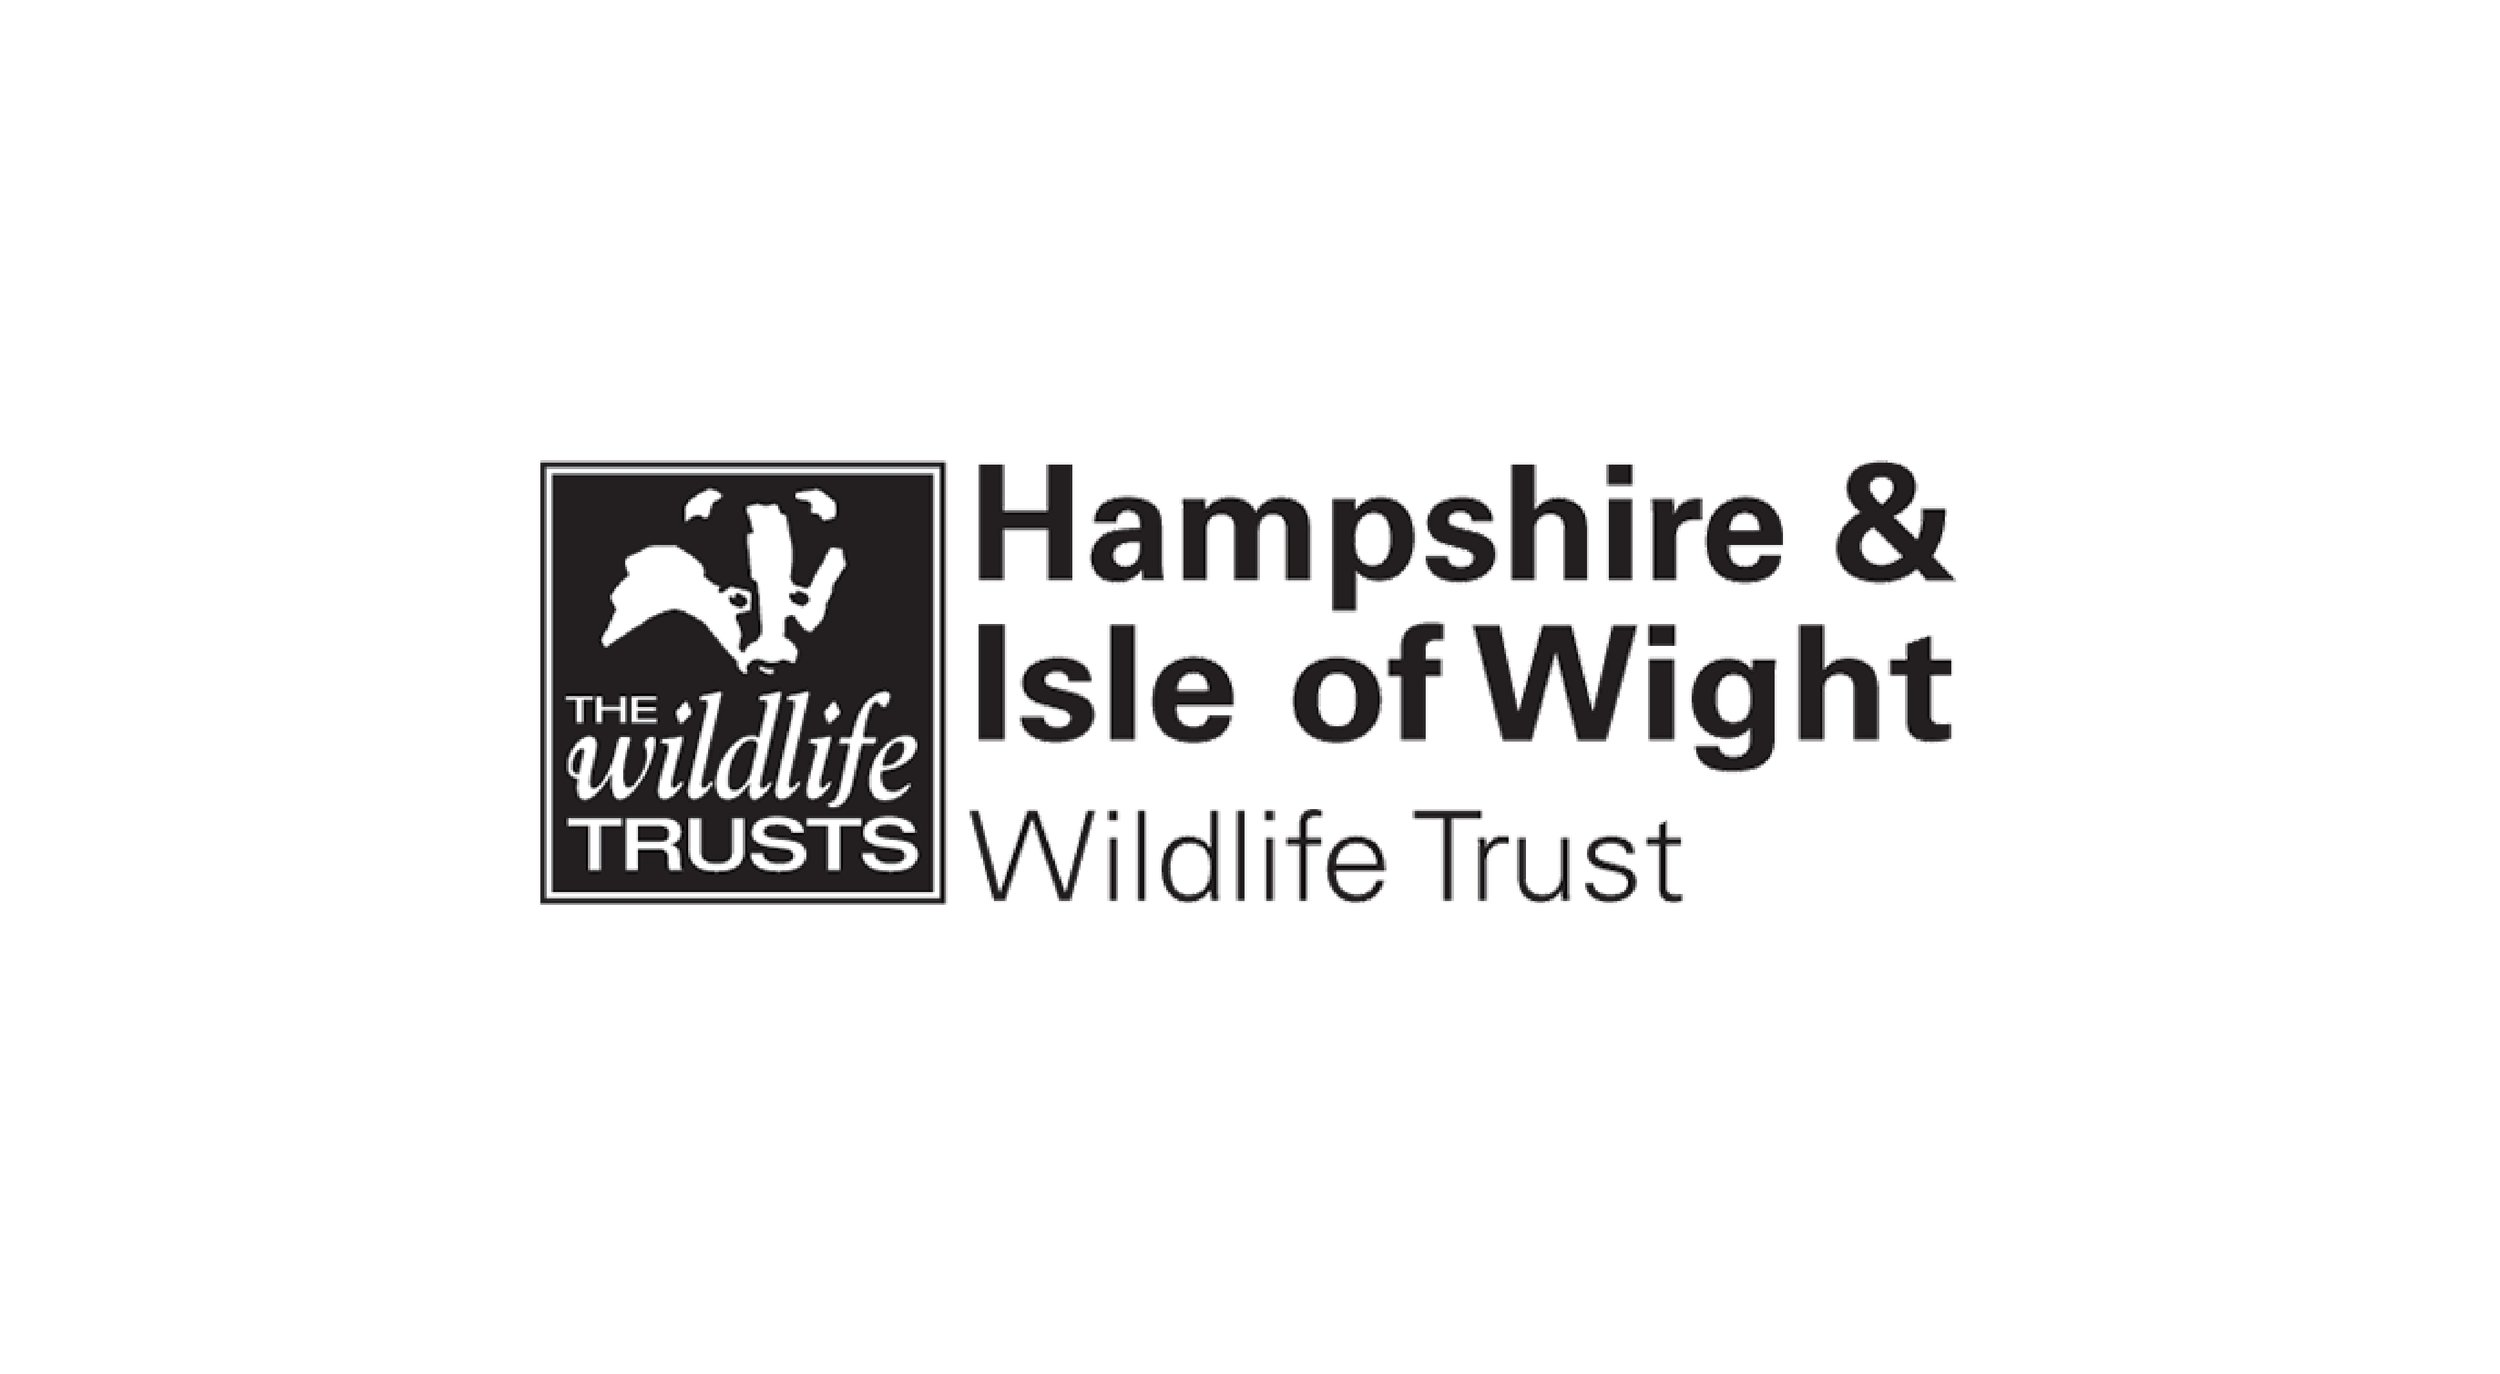 hants wildlife trust.jpg